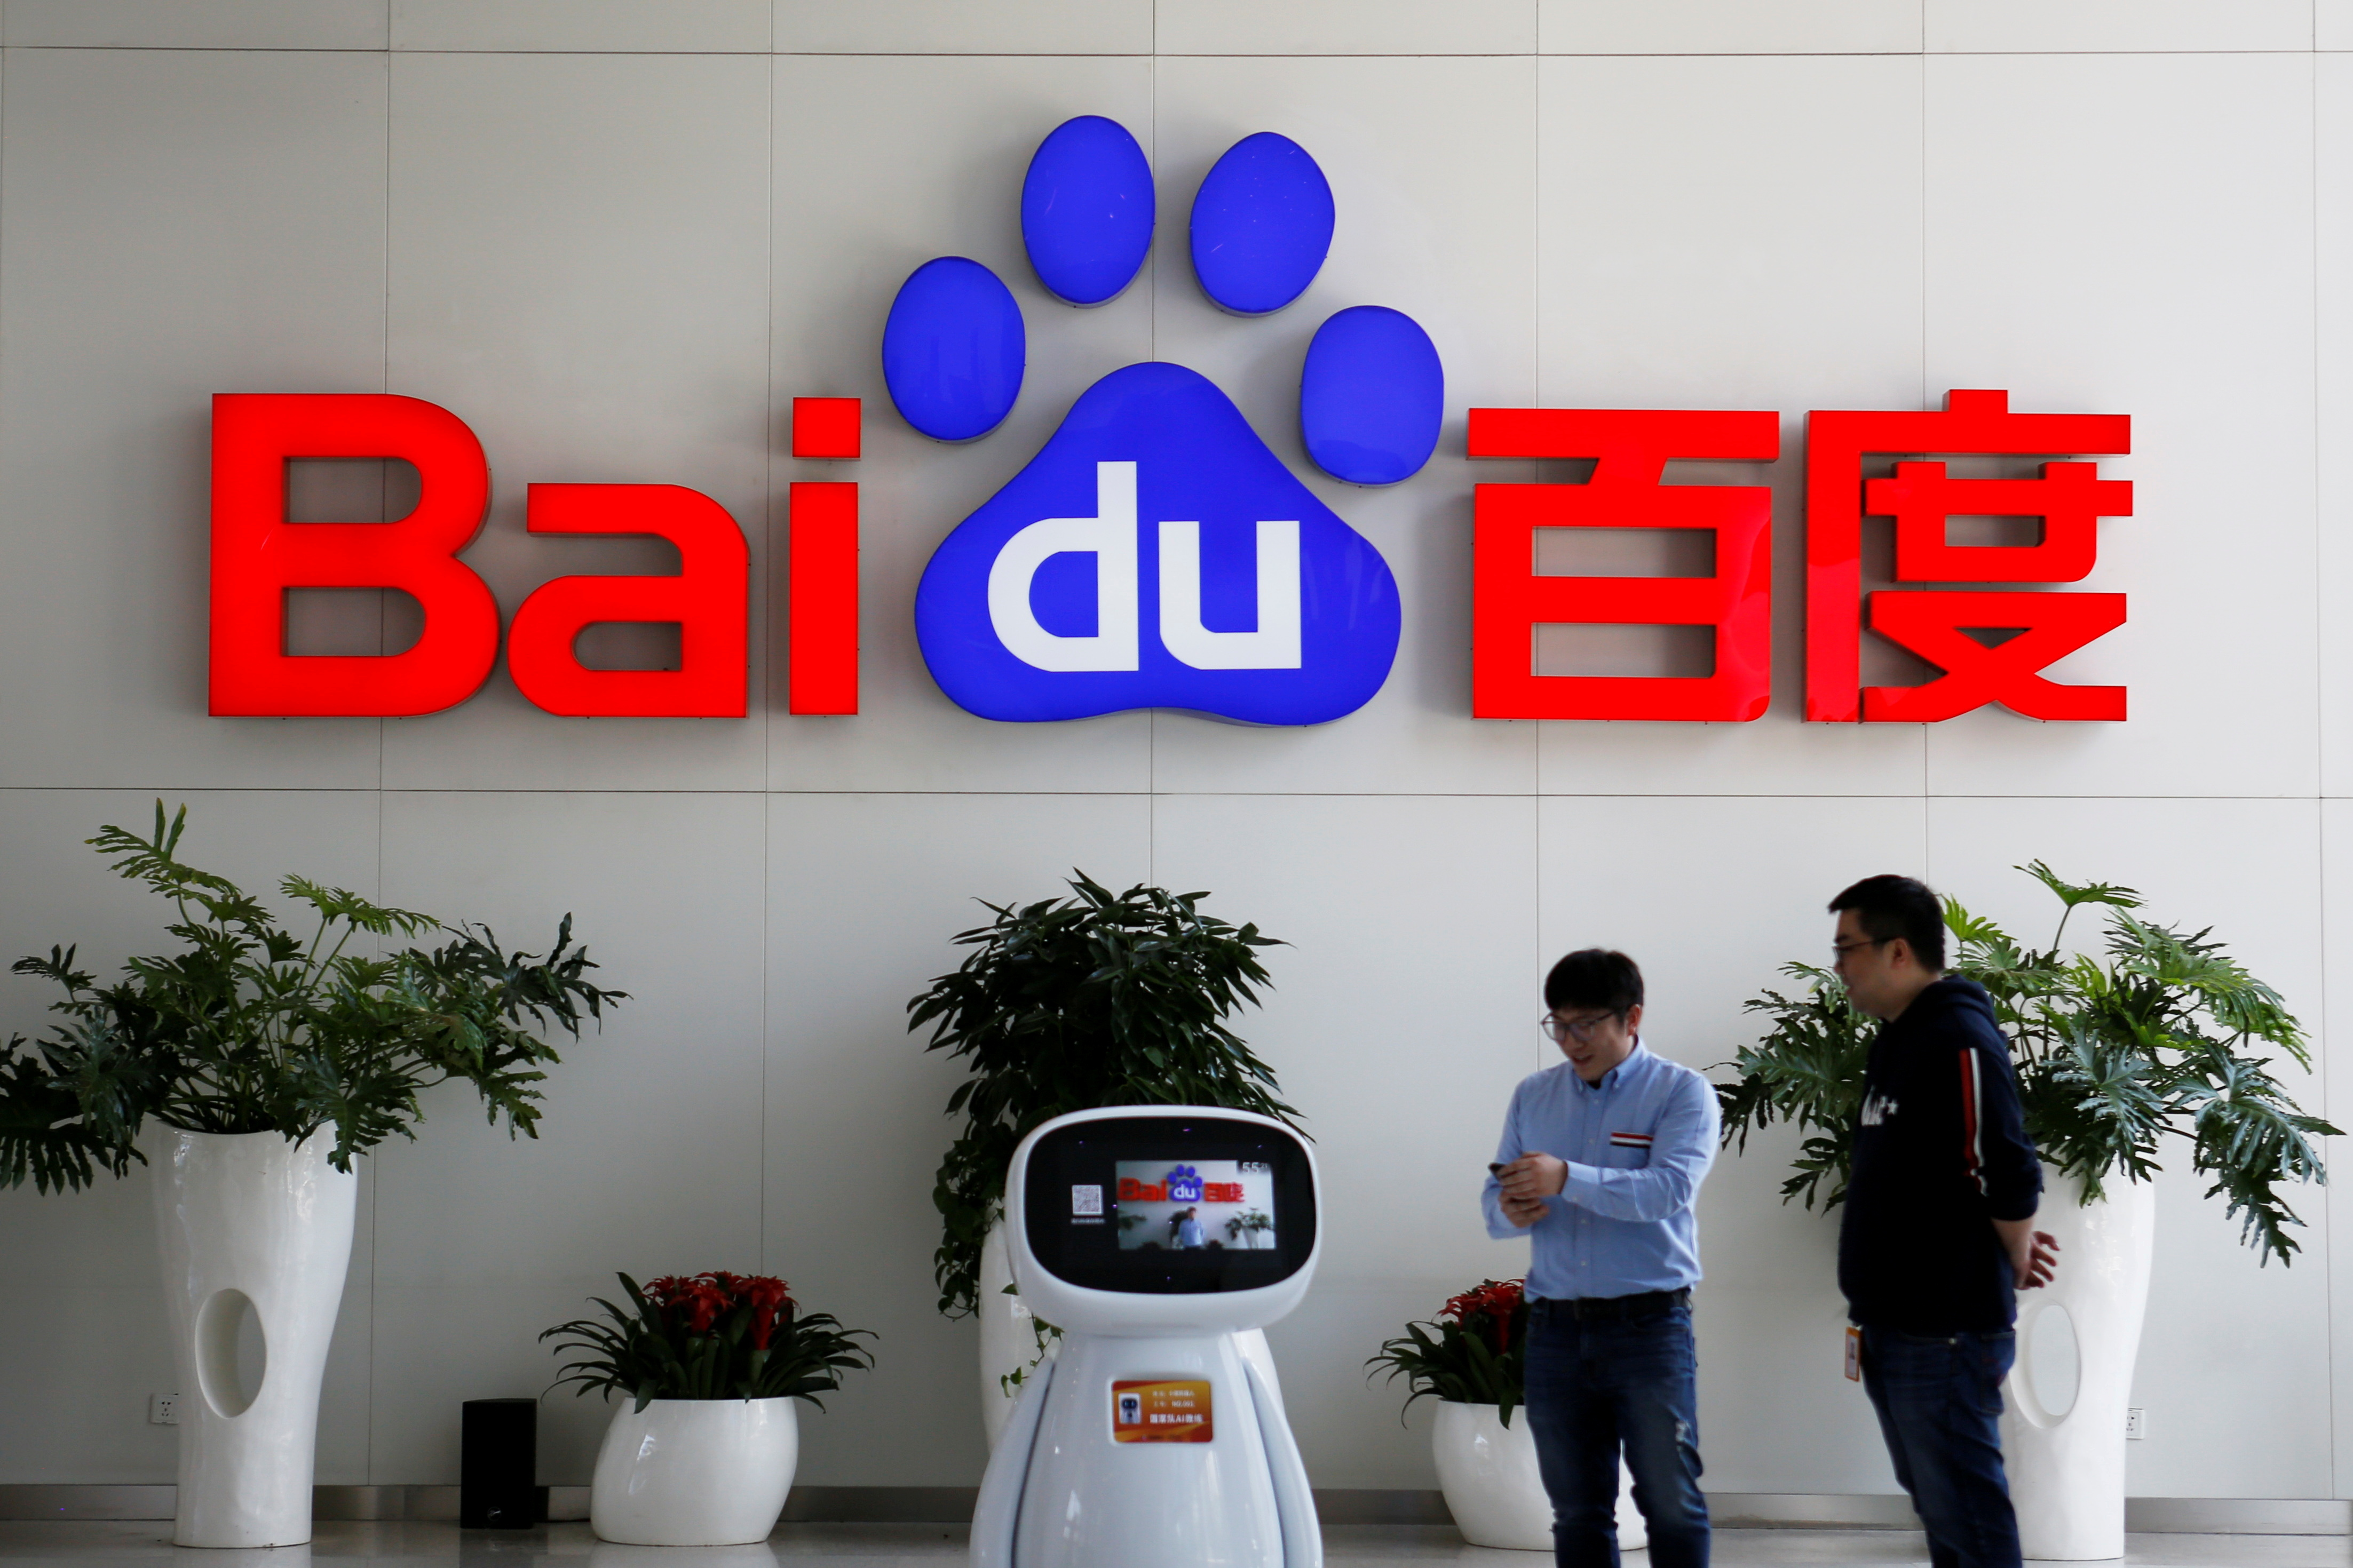 Men interact with a Baidu AI robot near the company logo at its headquarters in Beijing, China April 23, 2021. REUTERS/Florence Lo/File Photo